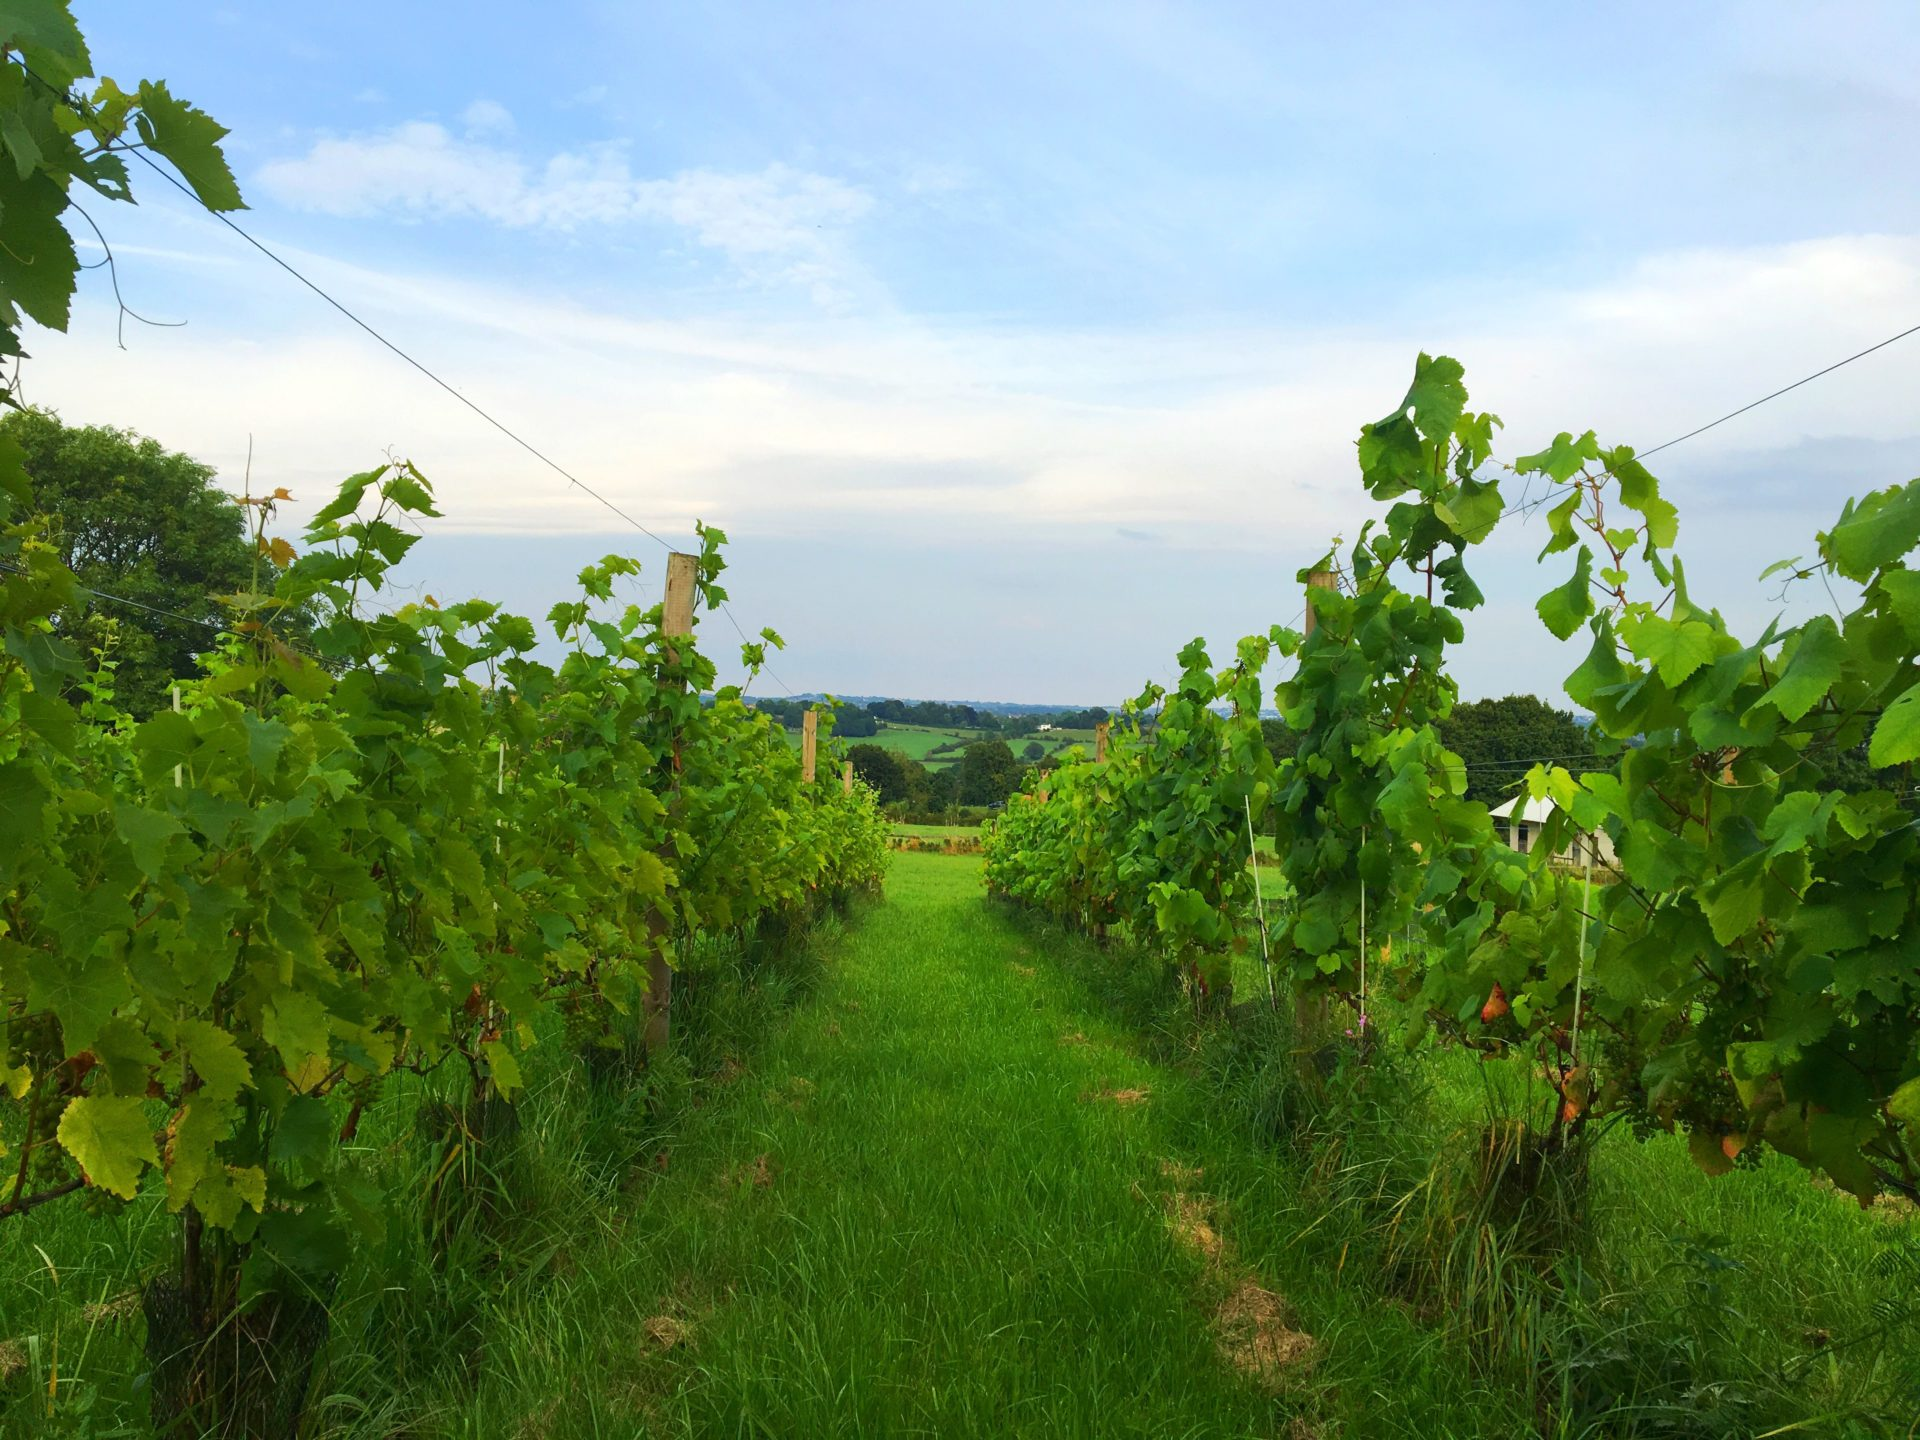 The vineyards of Wessington vineyards - rows of vines with blue sky and fields in the distance